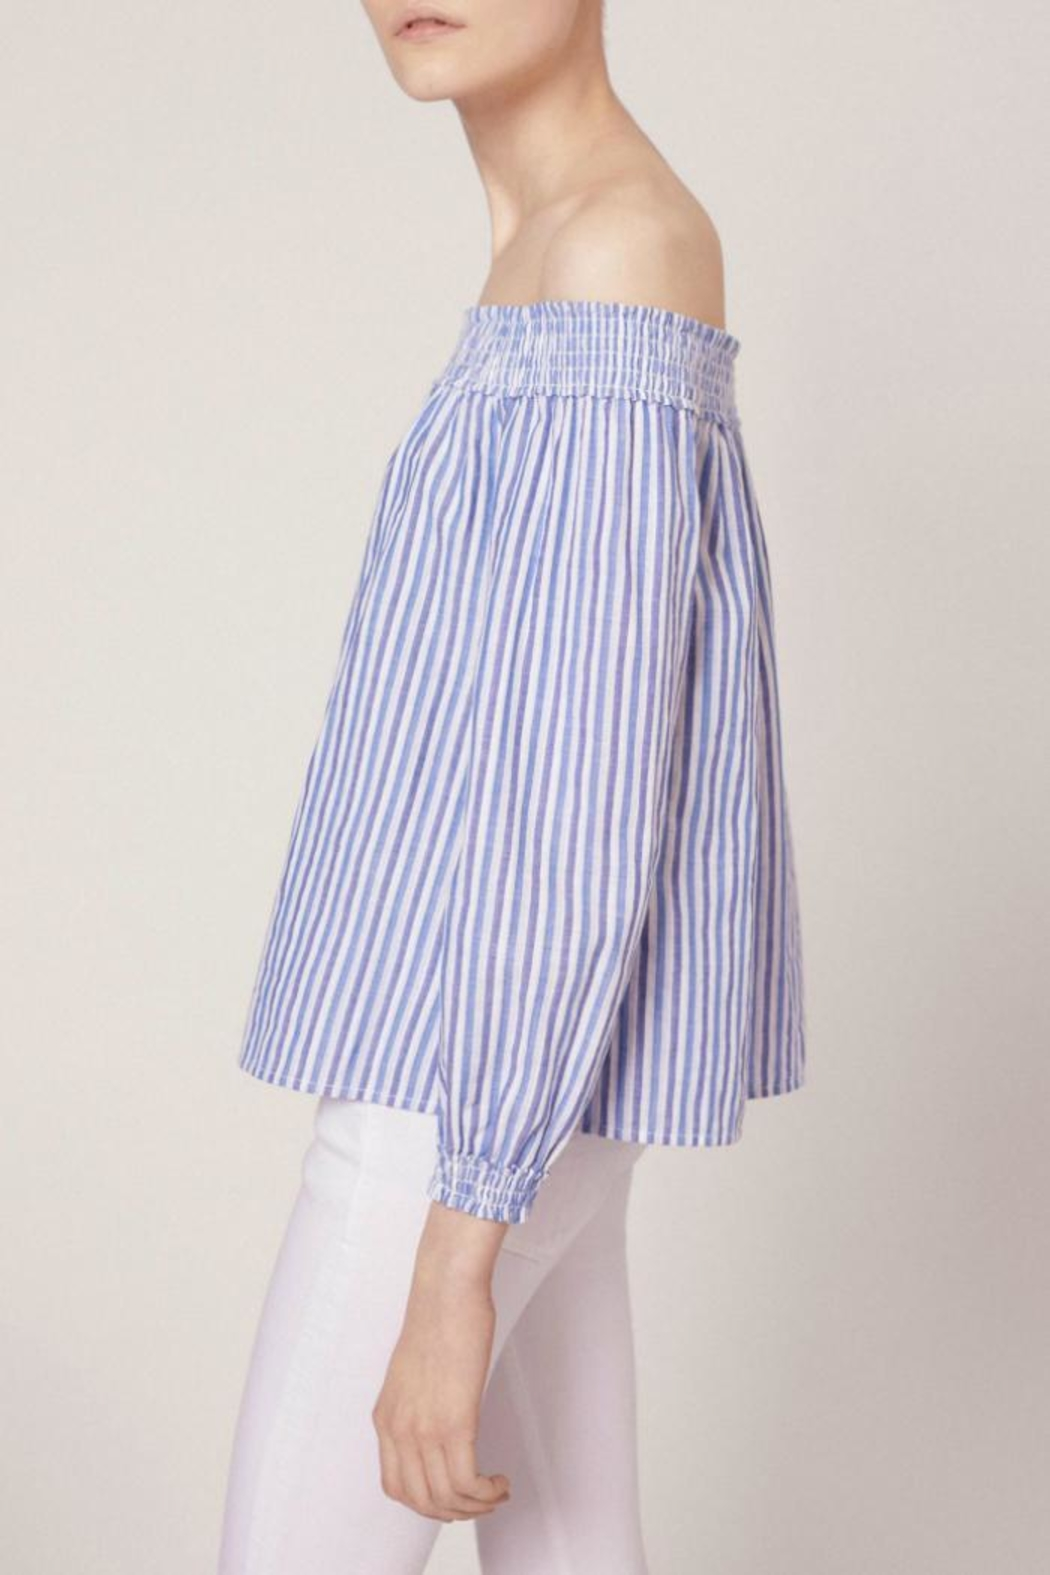 Rag & Bone Stripe Drew Top - Side Cropped Image